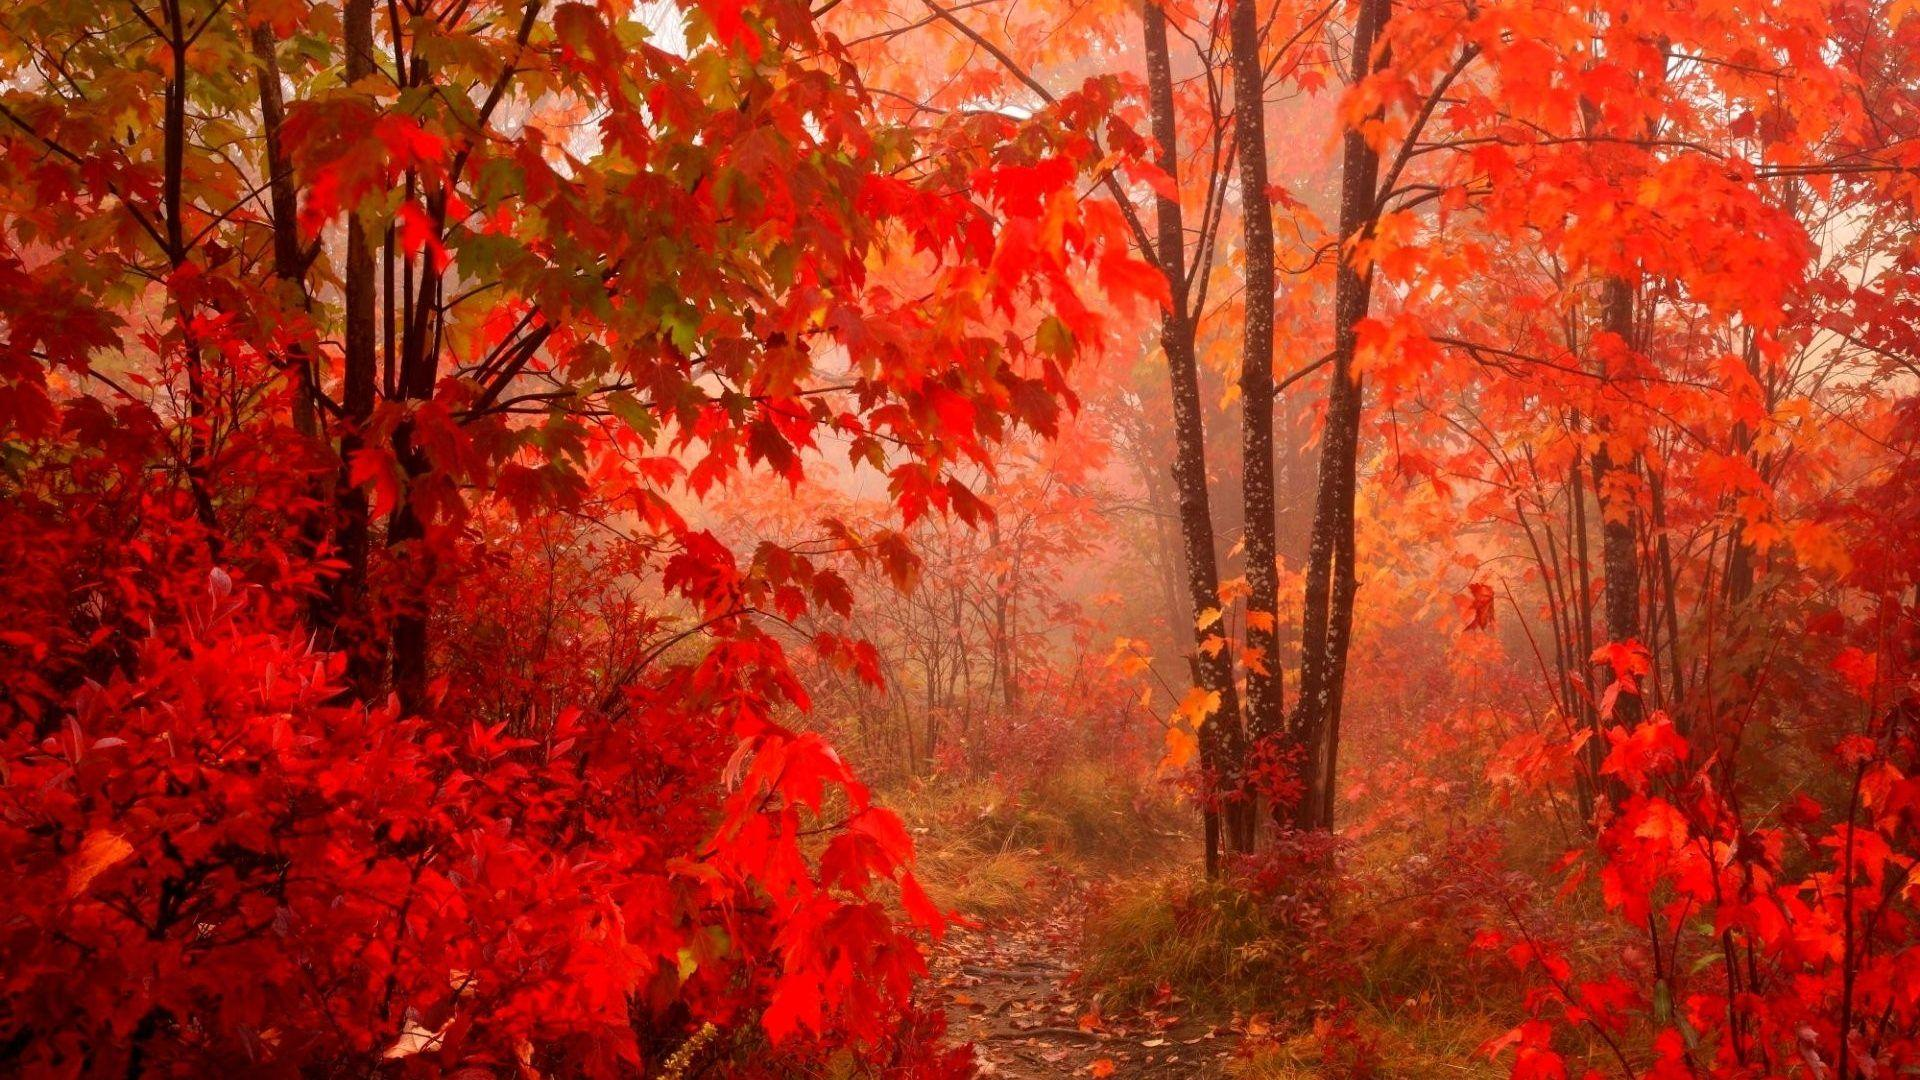 Autumn Leaves 2017 Wallpapers - Wallpaper Cave